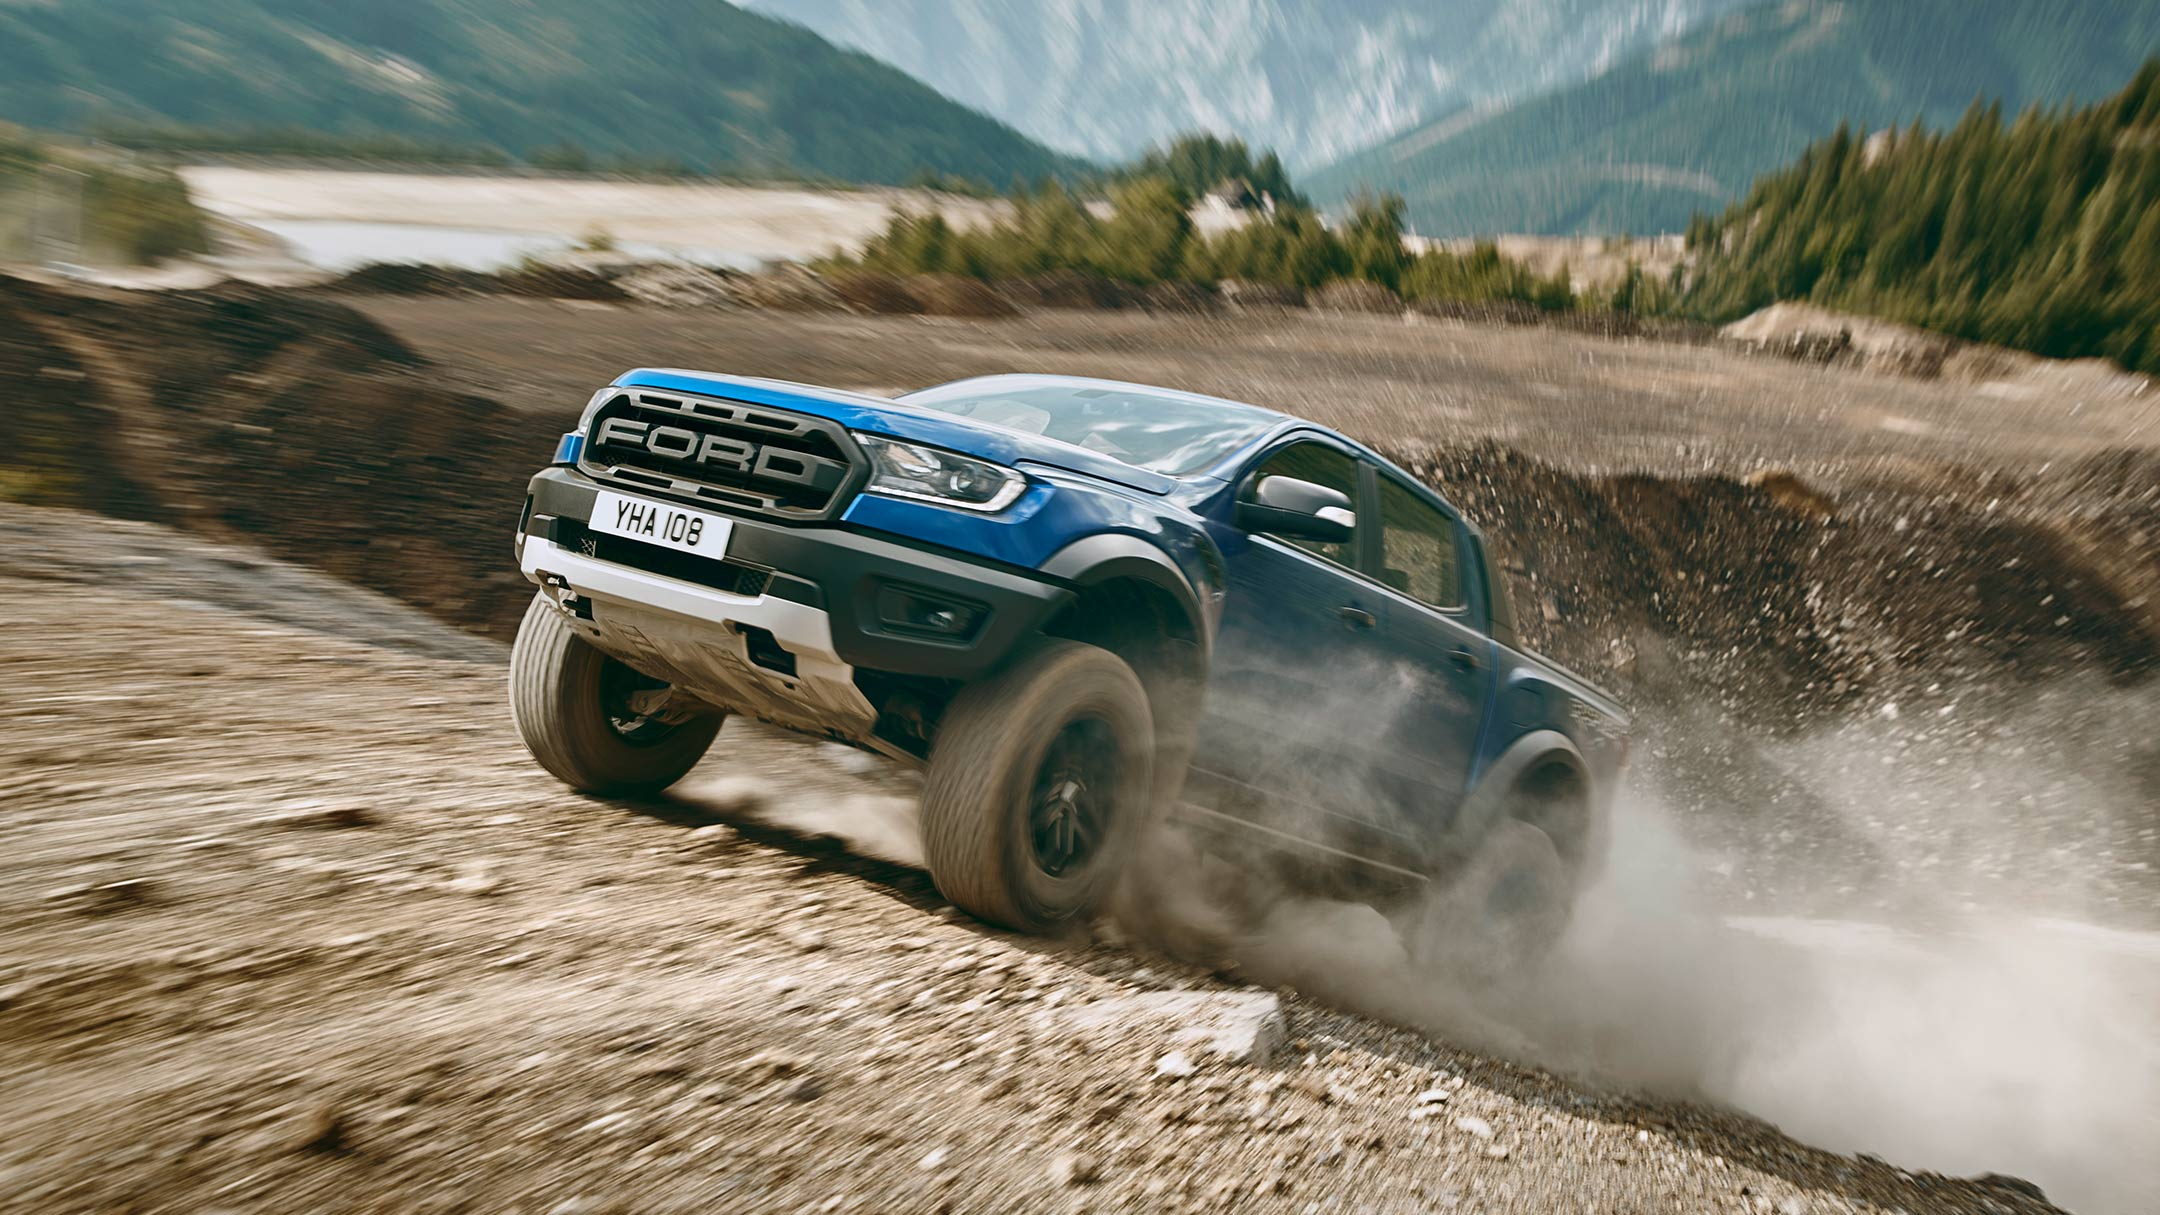 Blue Ford Ranger Raptor driving uphill off road